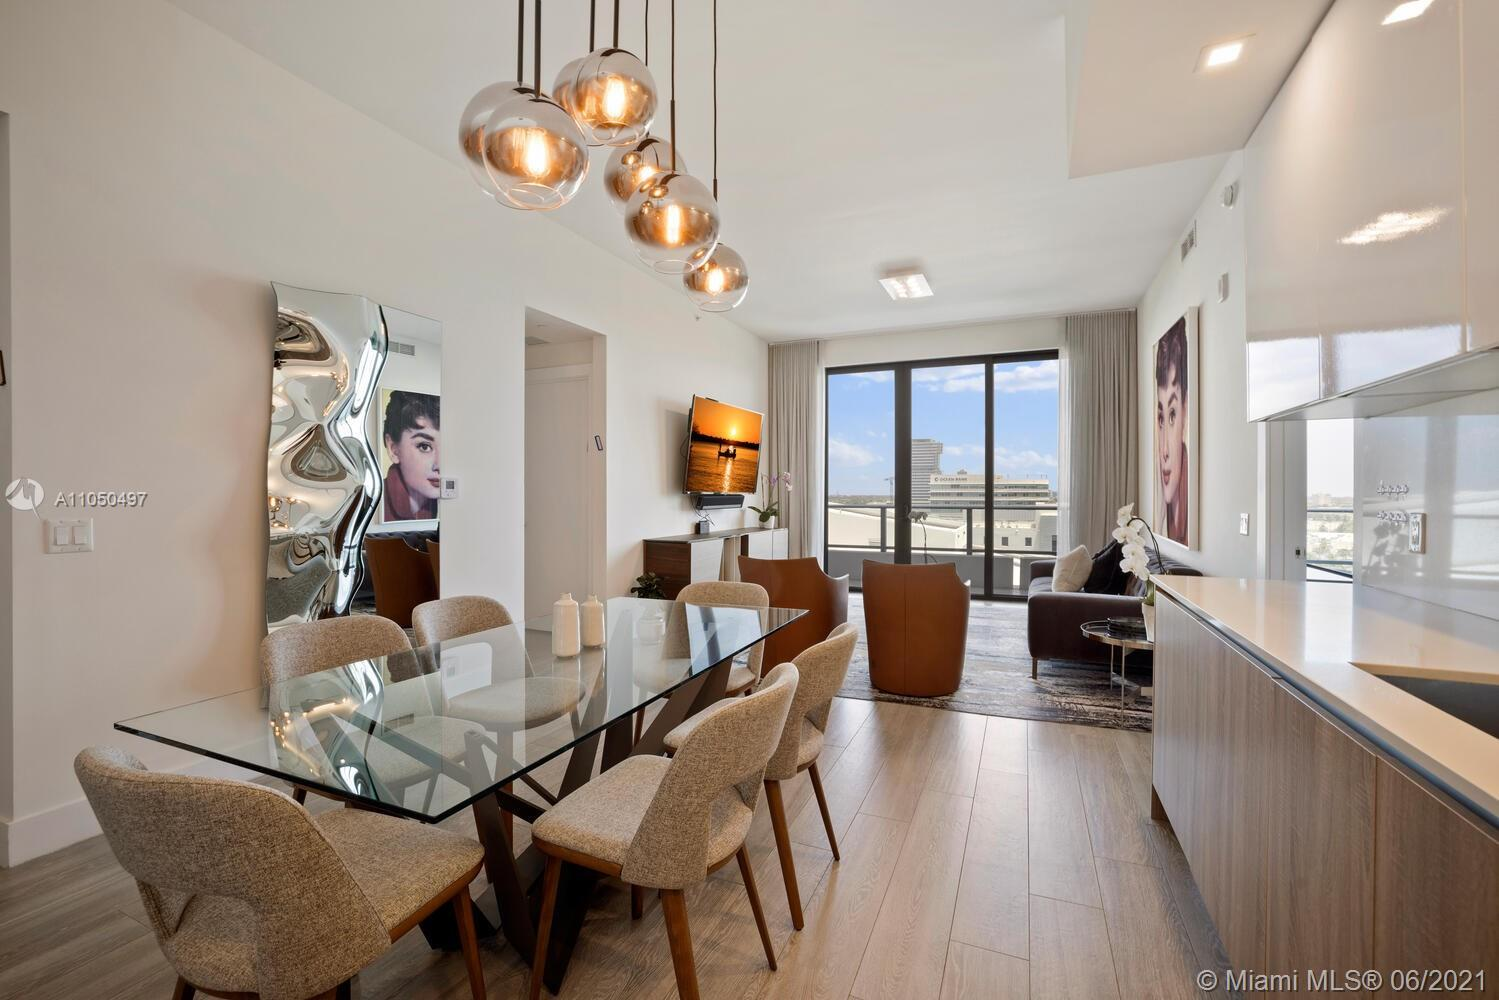 BEST PRICED PH IN THE BUILDING! BRAND NEW AVENTURA PARK SQUARE 2 BED/2 BATH + DEN PENTHOUSE RESIDEN